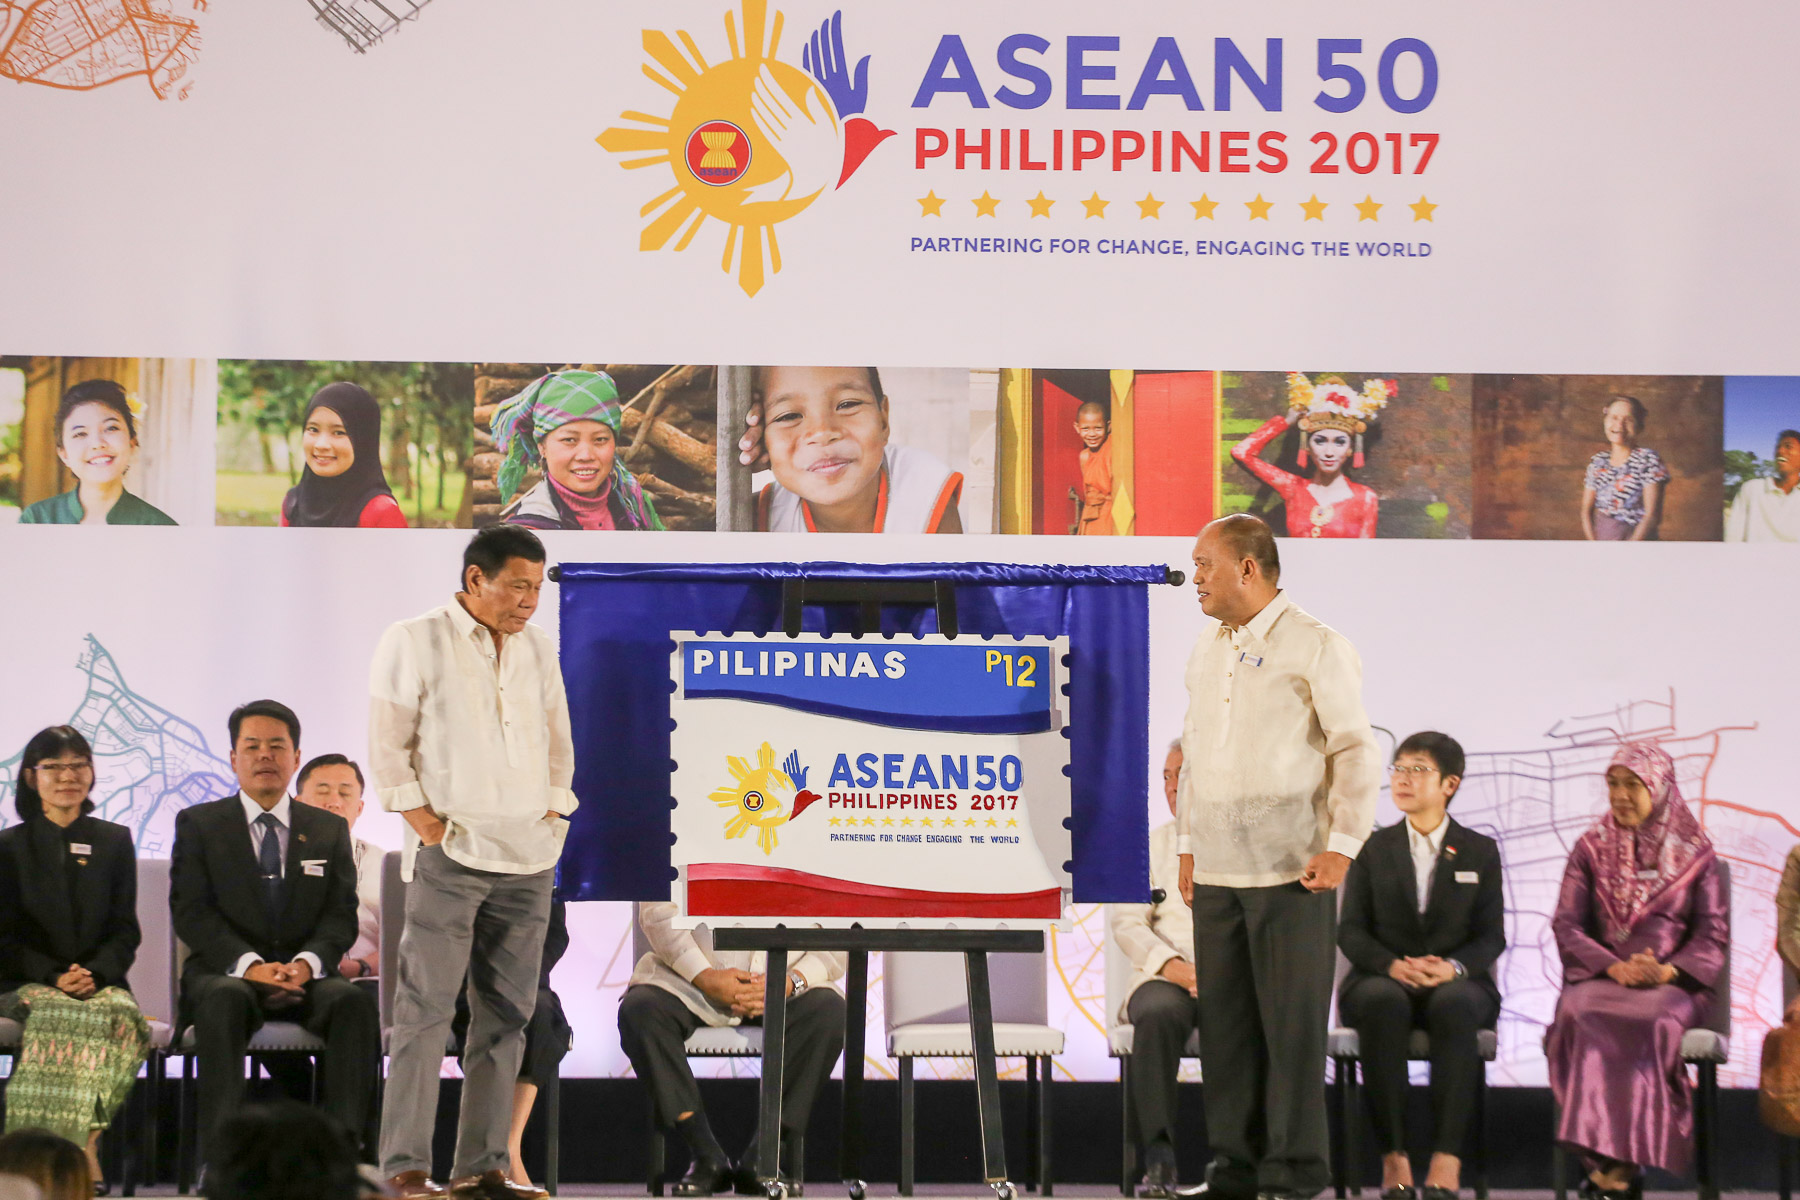 LEADING THE WAY. President Rodrigo Duterte and Postmaster General Joel Otarra unveil the ASEAN 2017 chairmanship limited-edition stamp. Photo by Manman Dejeto/Rappler